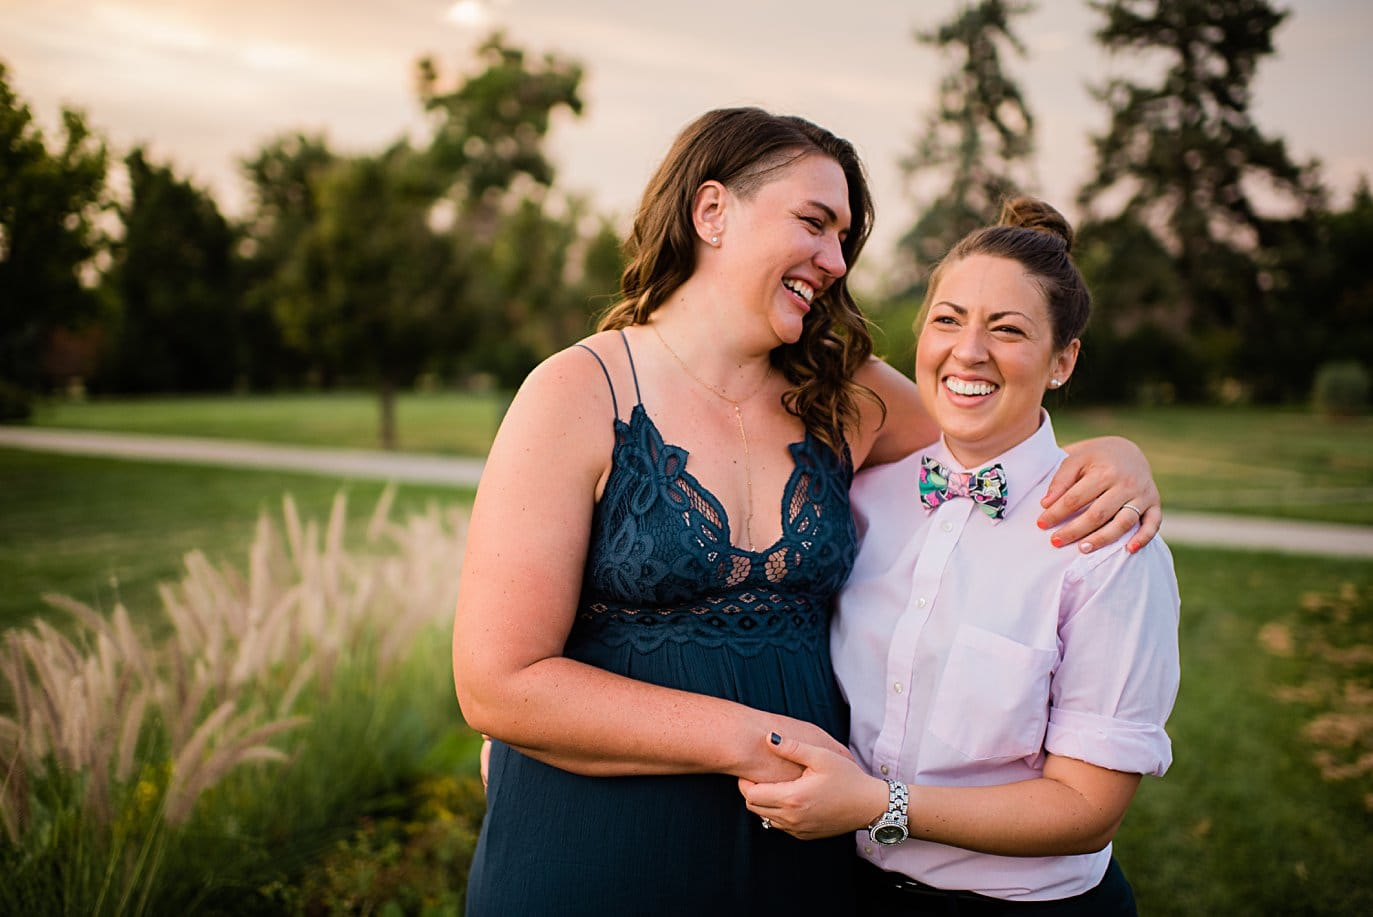 bride in navy summer dress and bride in bow tie get engaged in City Park Denver by Denver proposal photographer Jennie Crate